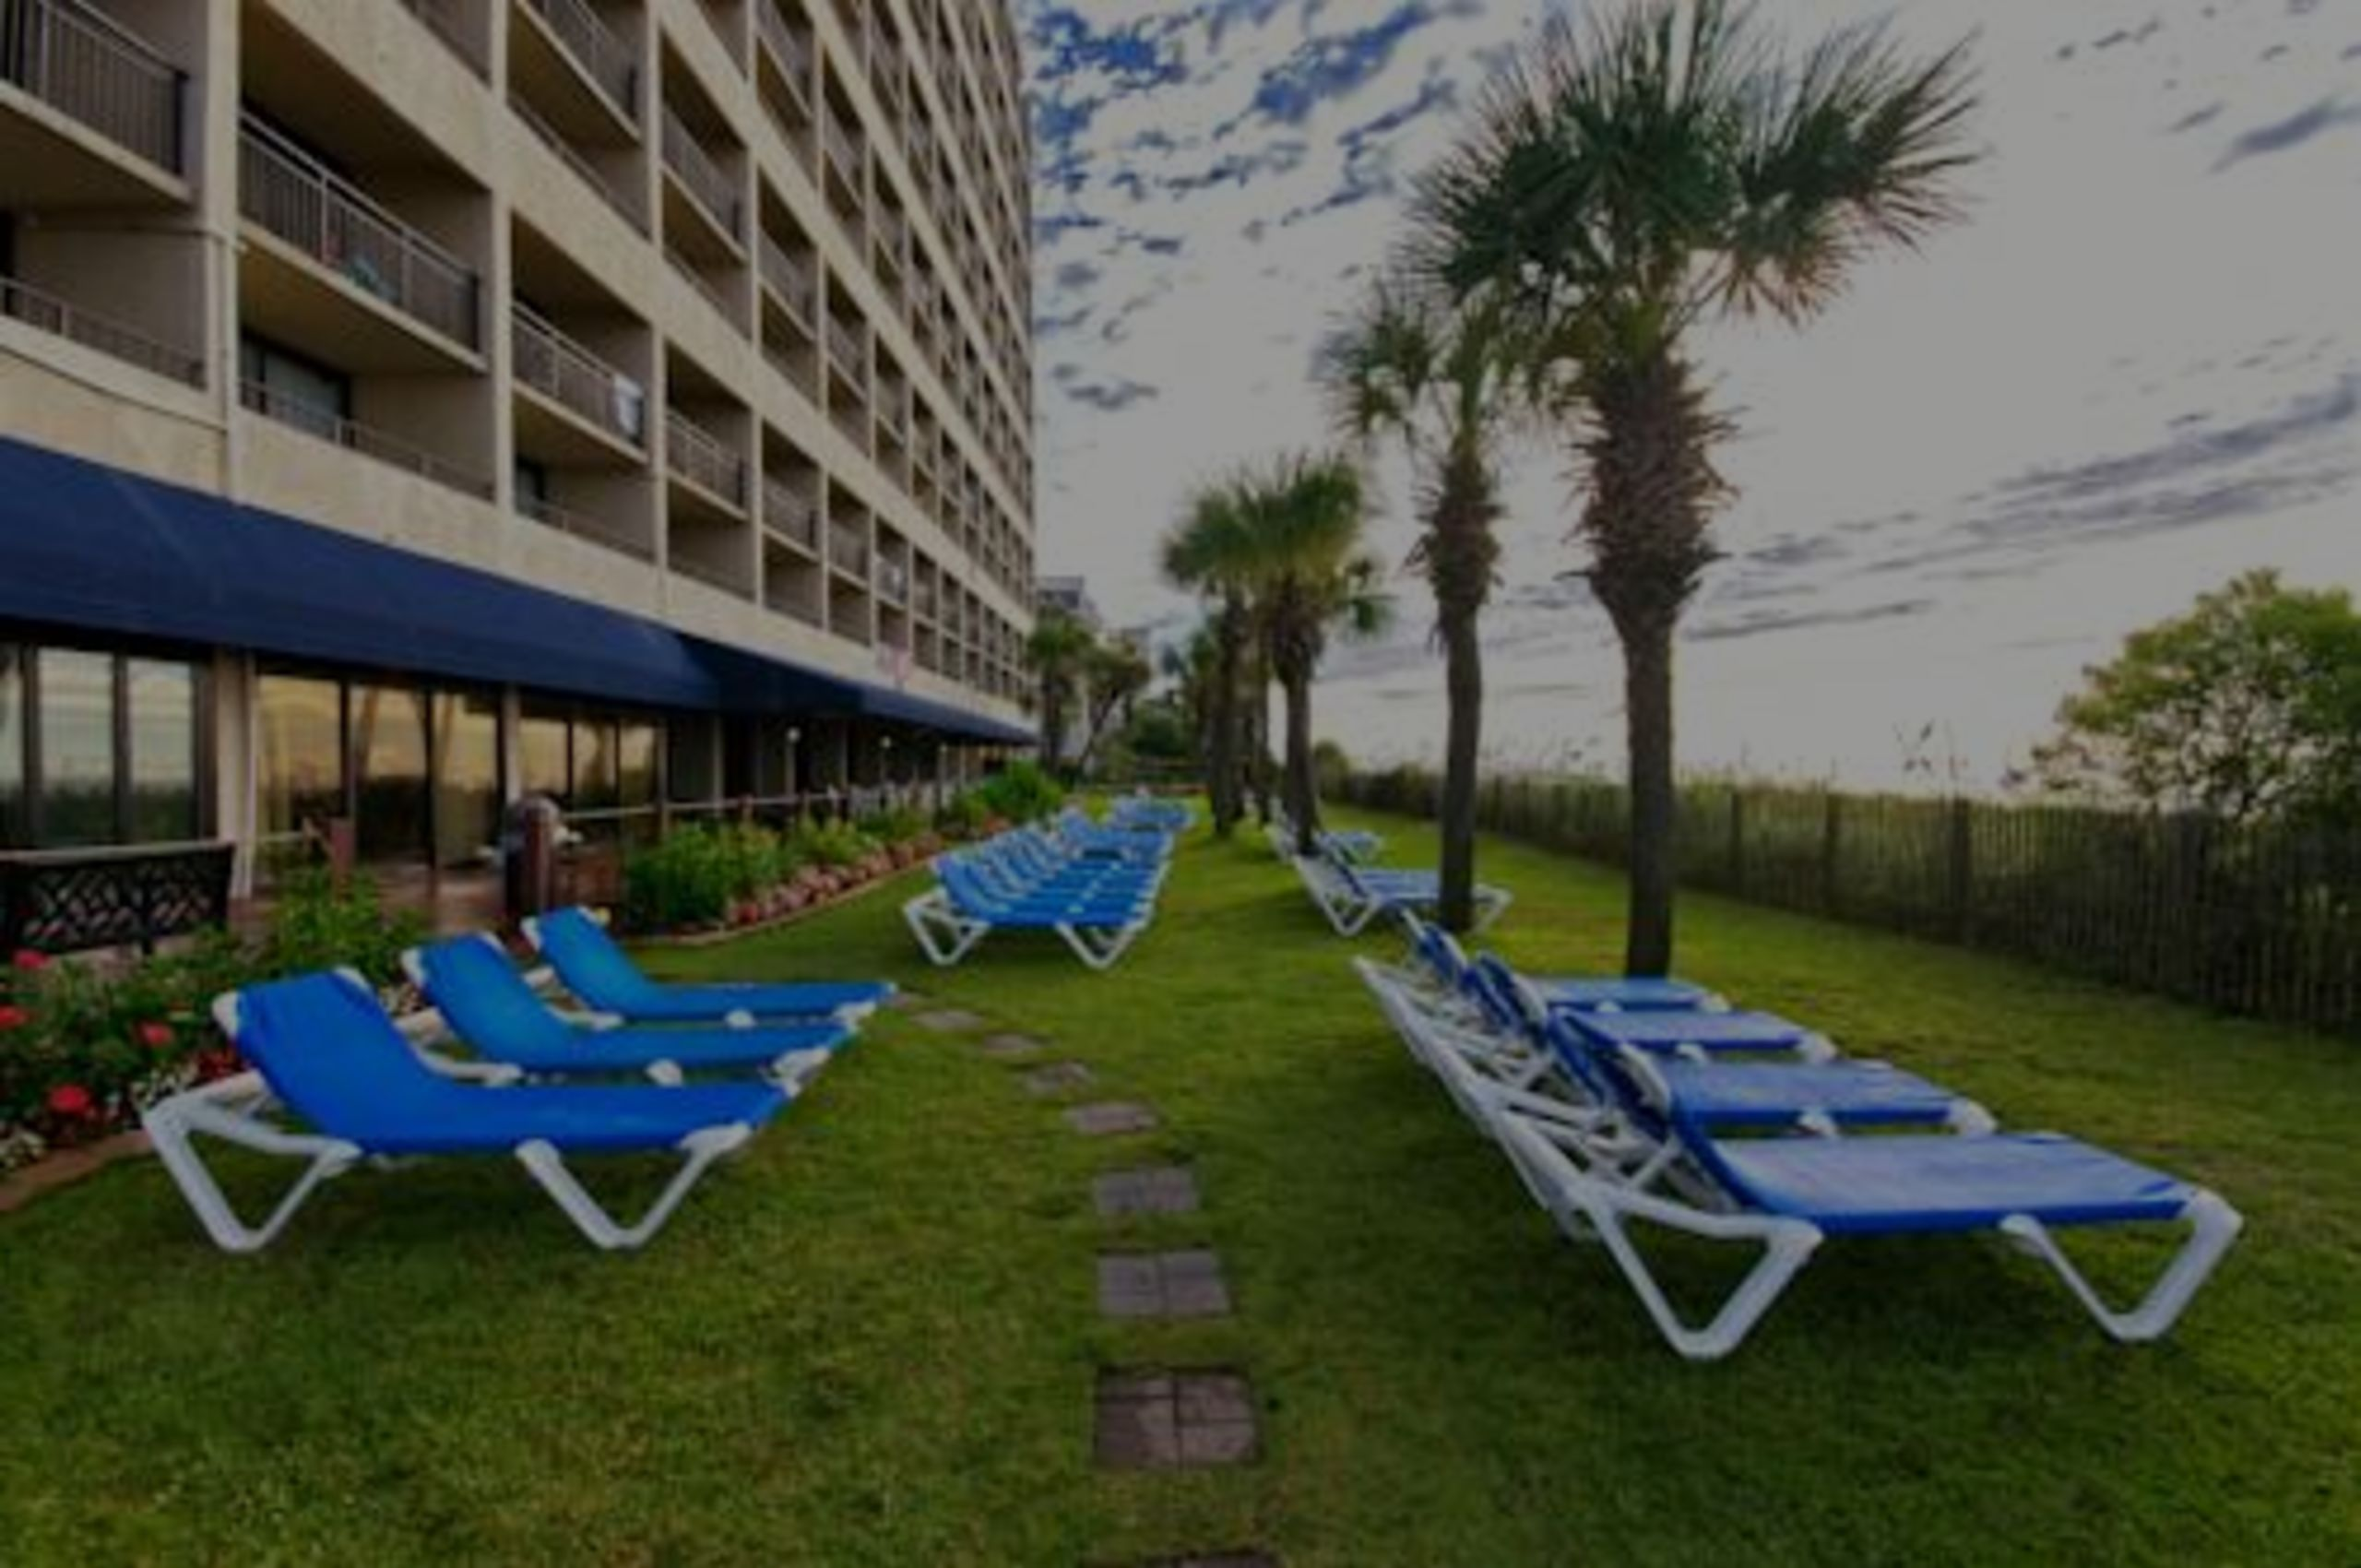 Ocean Reef Resort Myrtle Beach